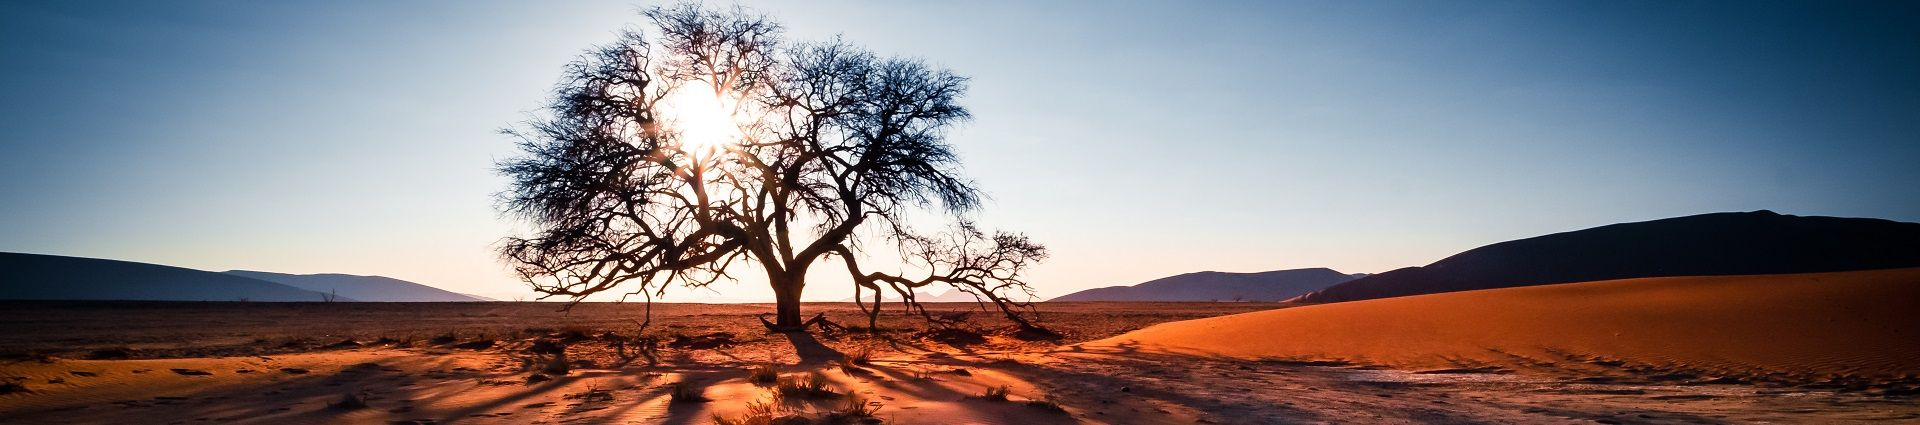 Photography trips in Southern Africa